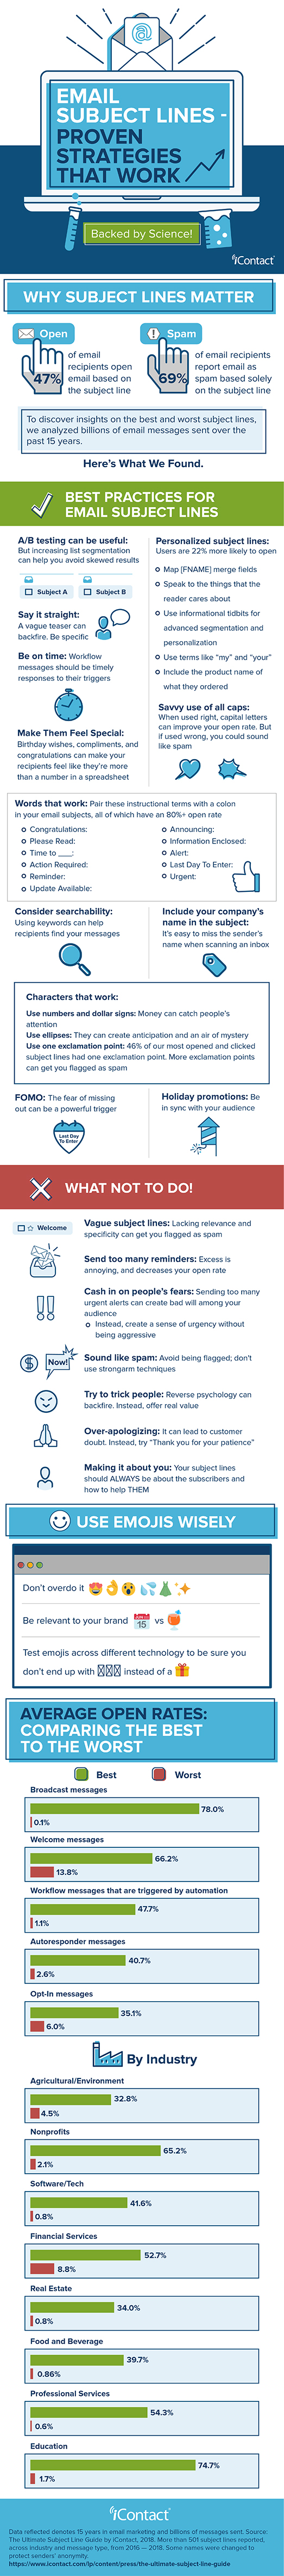 Infographic outlines a range of email subject lines tips